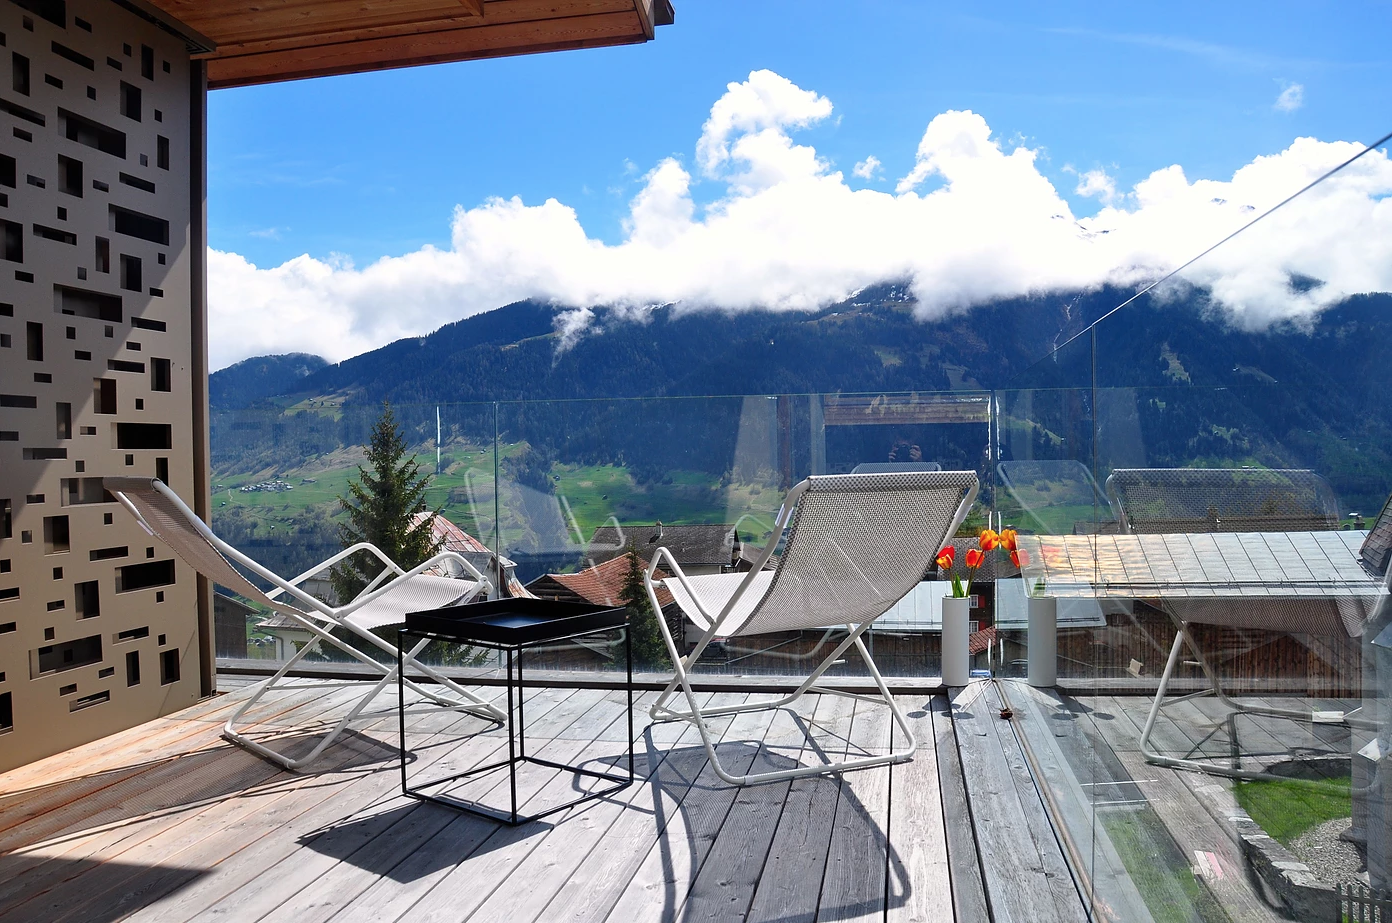 Situated in the alpine village of Vignongn, with views of the Val Lumneziz (Vally of Light), this eco-friendly, Scandi-inspired vacation home has a sunny terrace where you can enjoy views.  Photo 6 of 8 in 7 Alpine Holiday Chalets in Switzerland